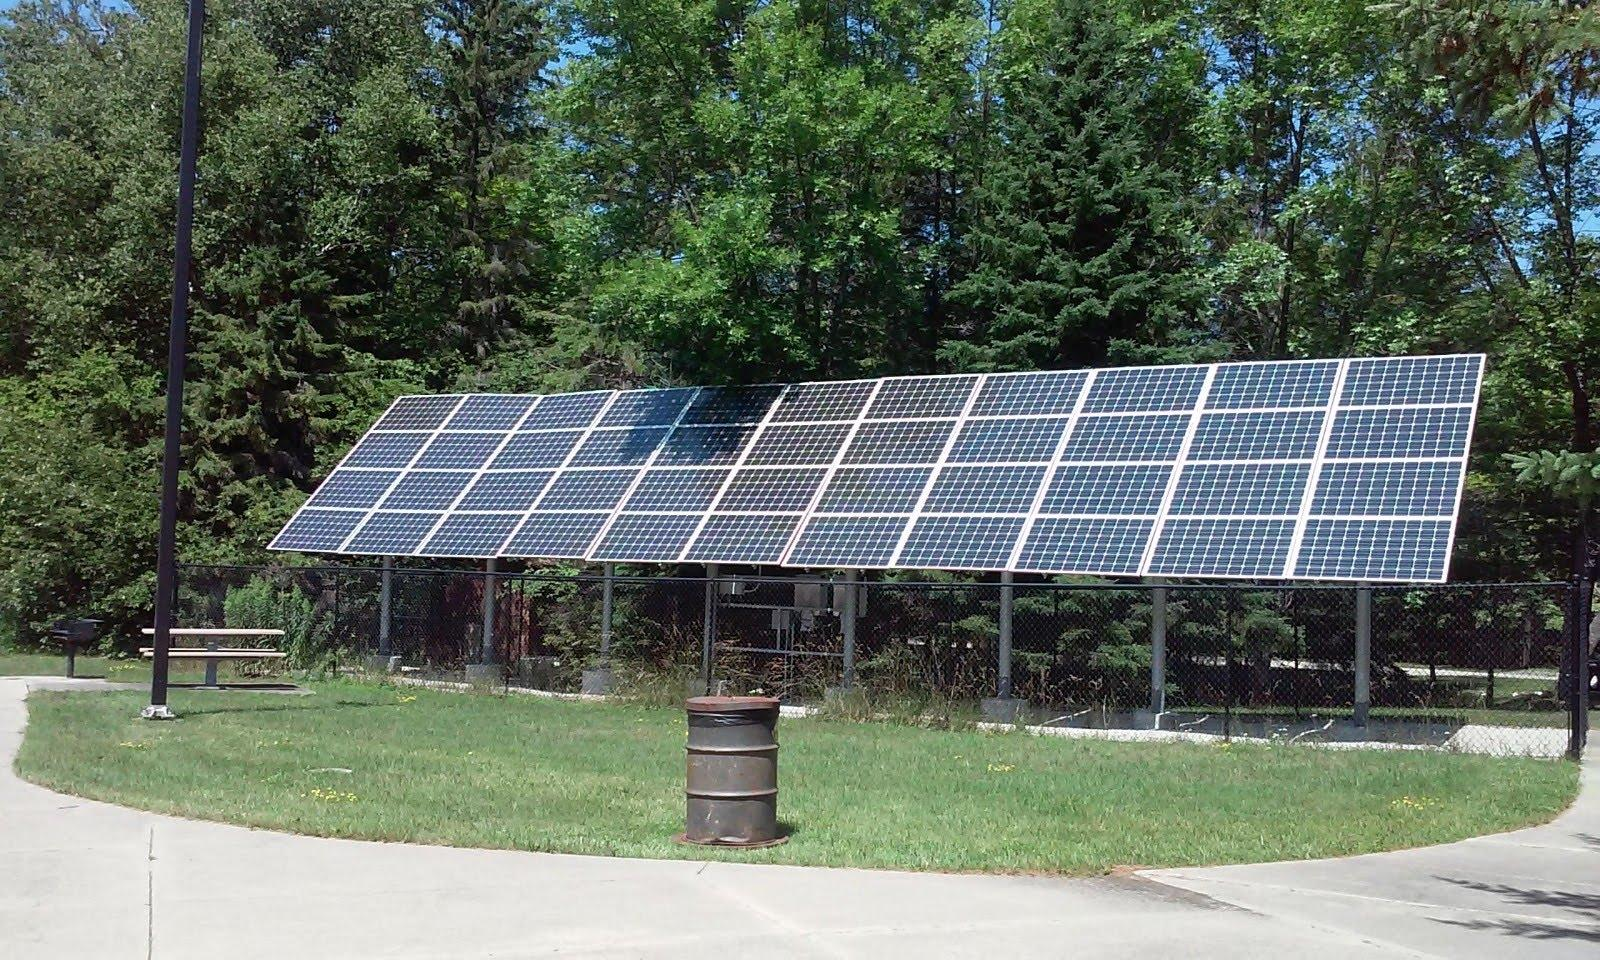 Solar Is Booming: Here Are 3 Smart Growth Picks